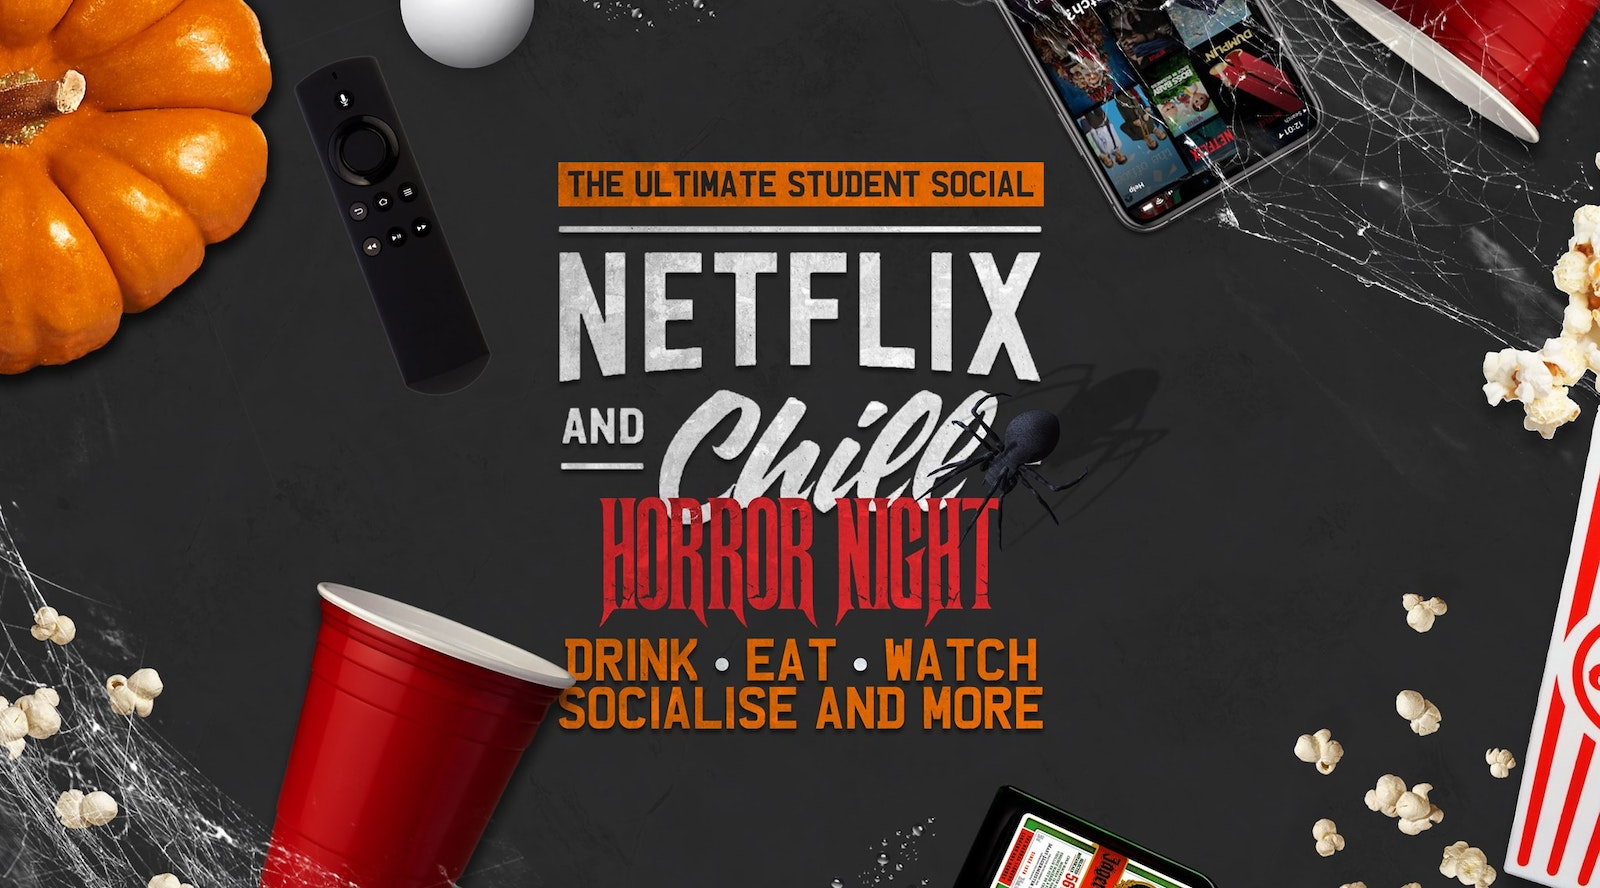 Netflix & Chill 👀 HORROR NIGHT  🎃The Ultimate Spooky Social 🎉